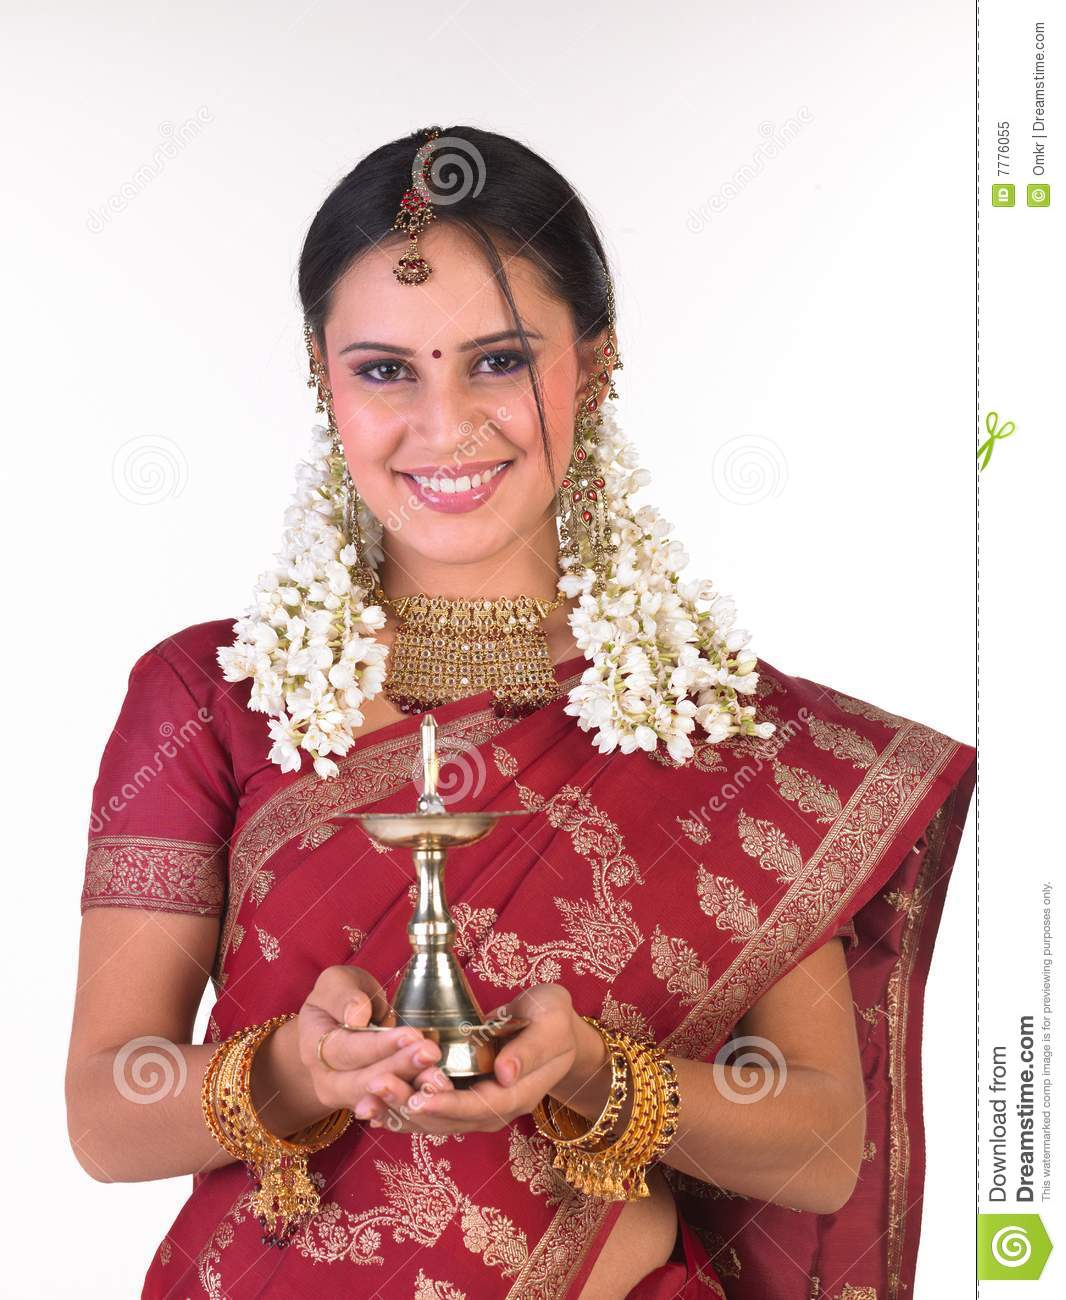 Teenage Girl With Sari Holding The Lamp Stock Image - Image of ... for Girl Holding Lamp  113cpg